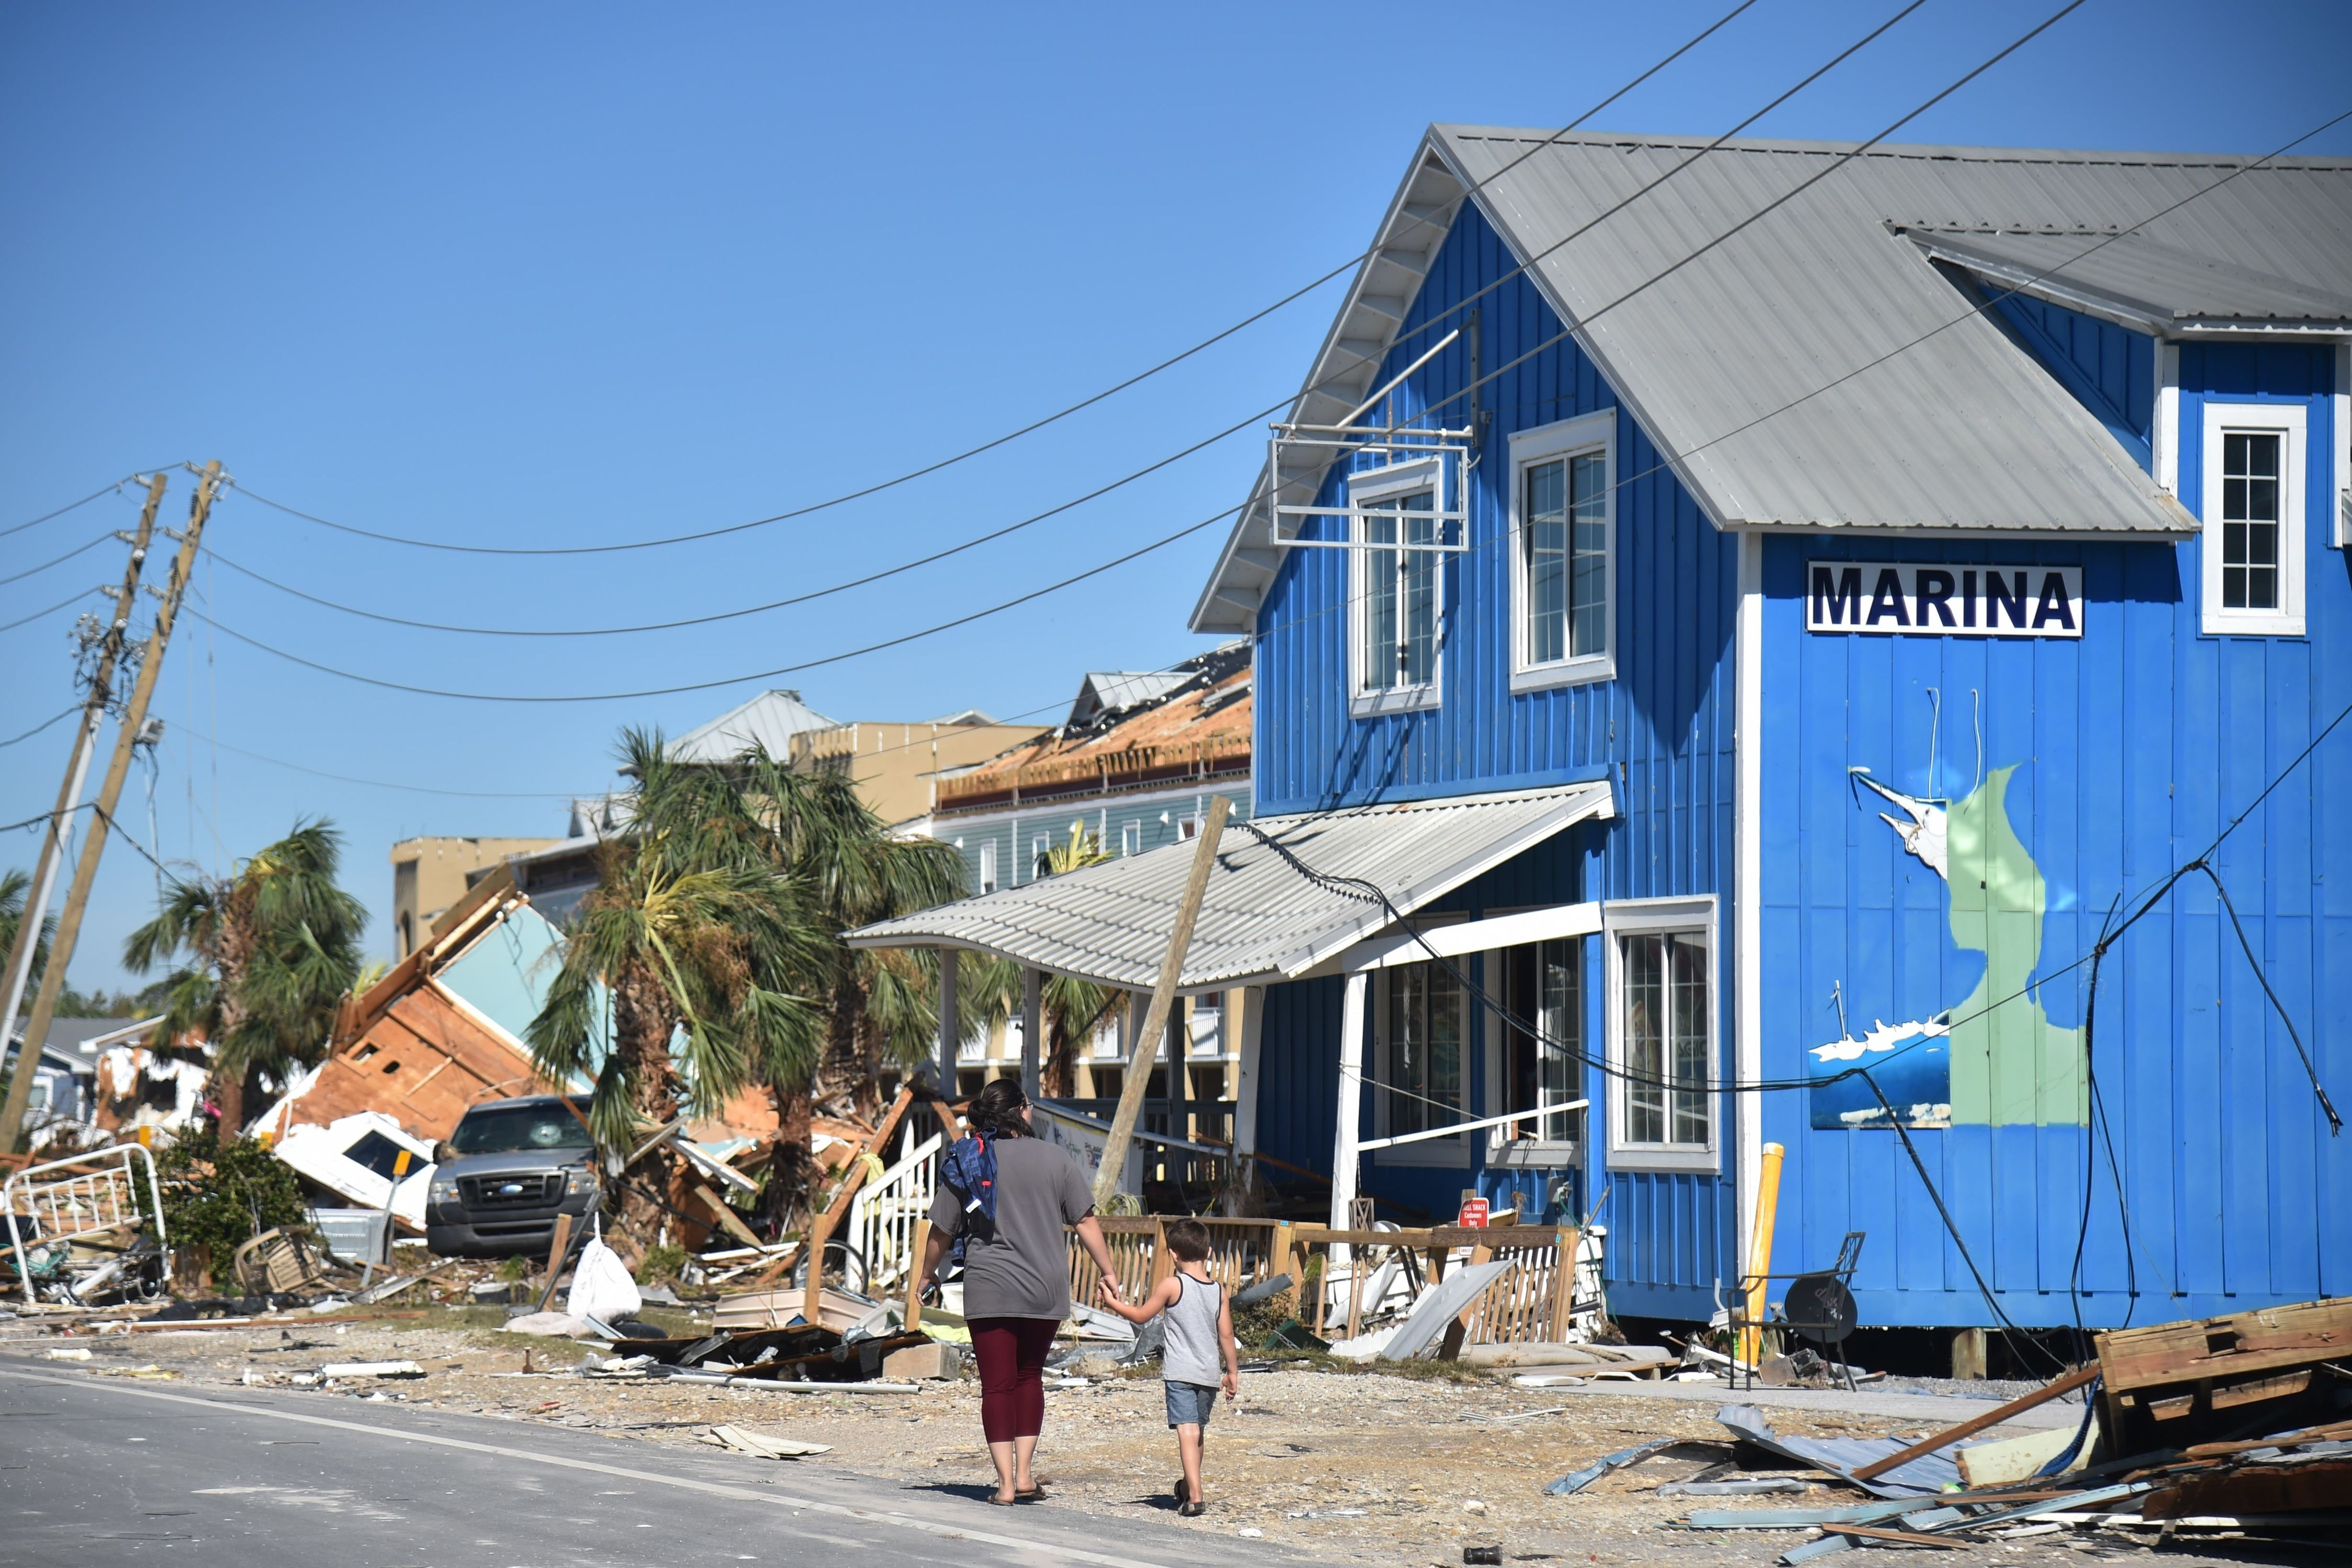 Here is How to Alert Search-and-Rescue Teams About People Affected by Hurricane Michael